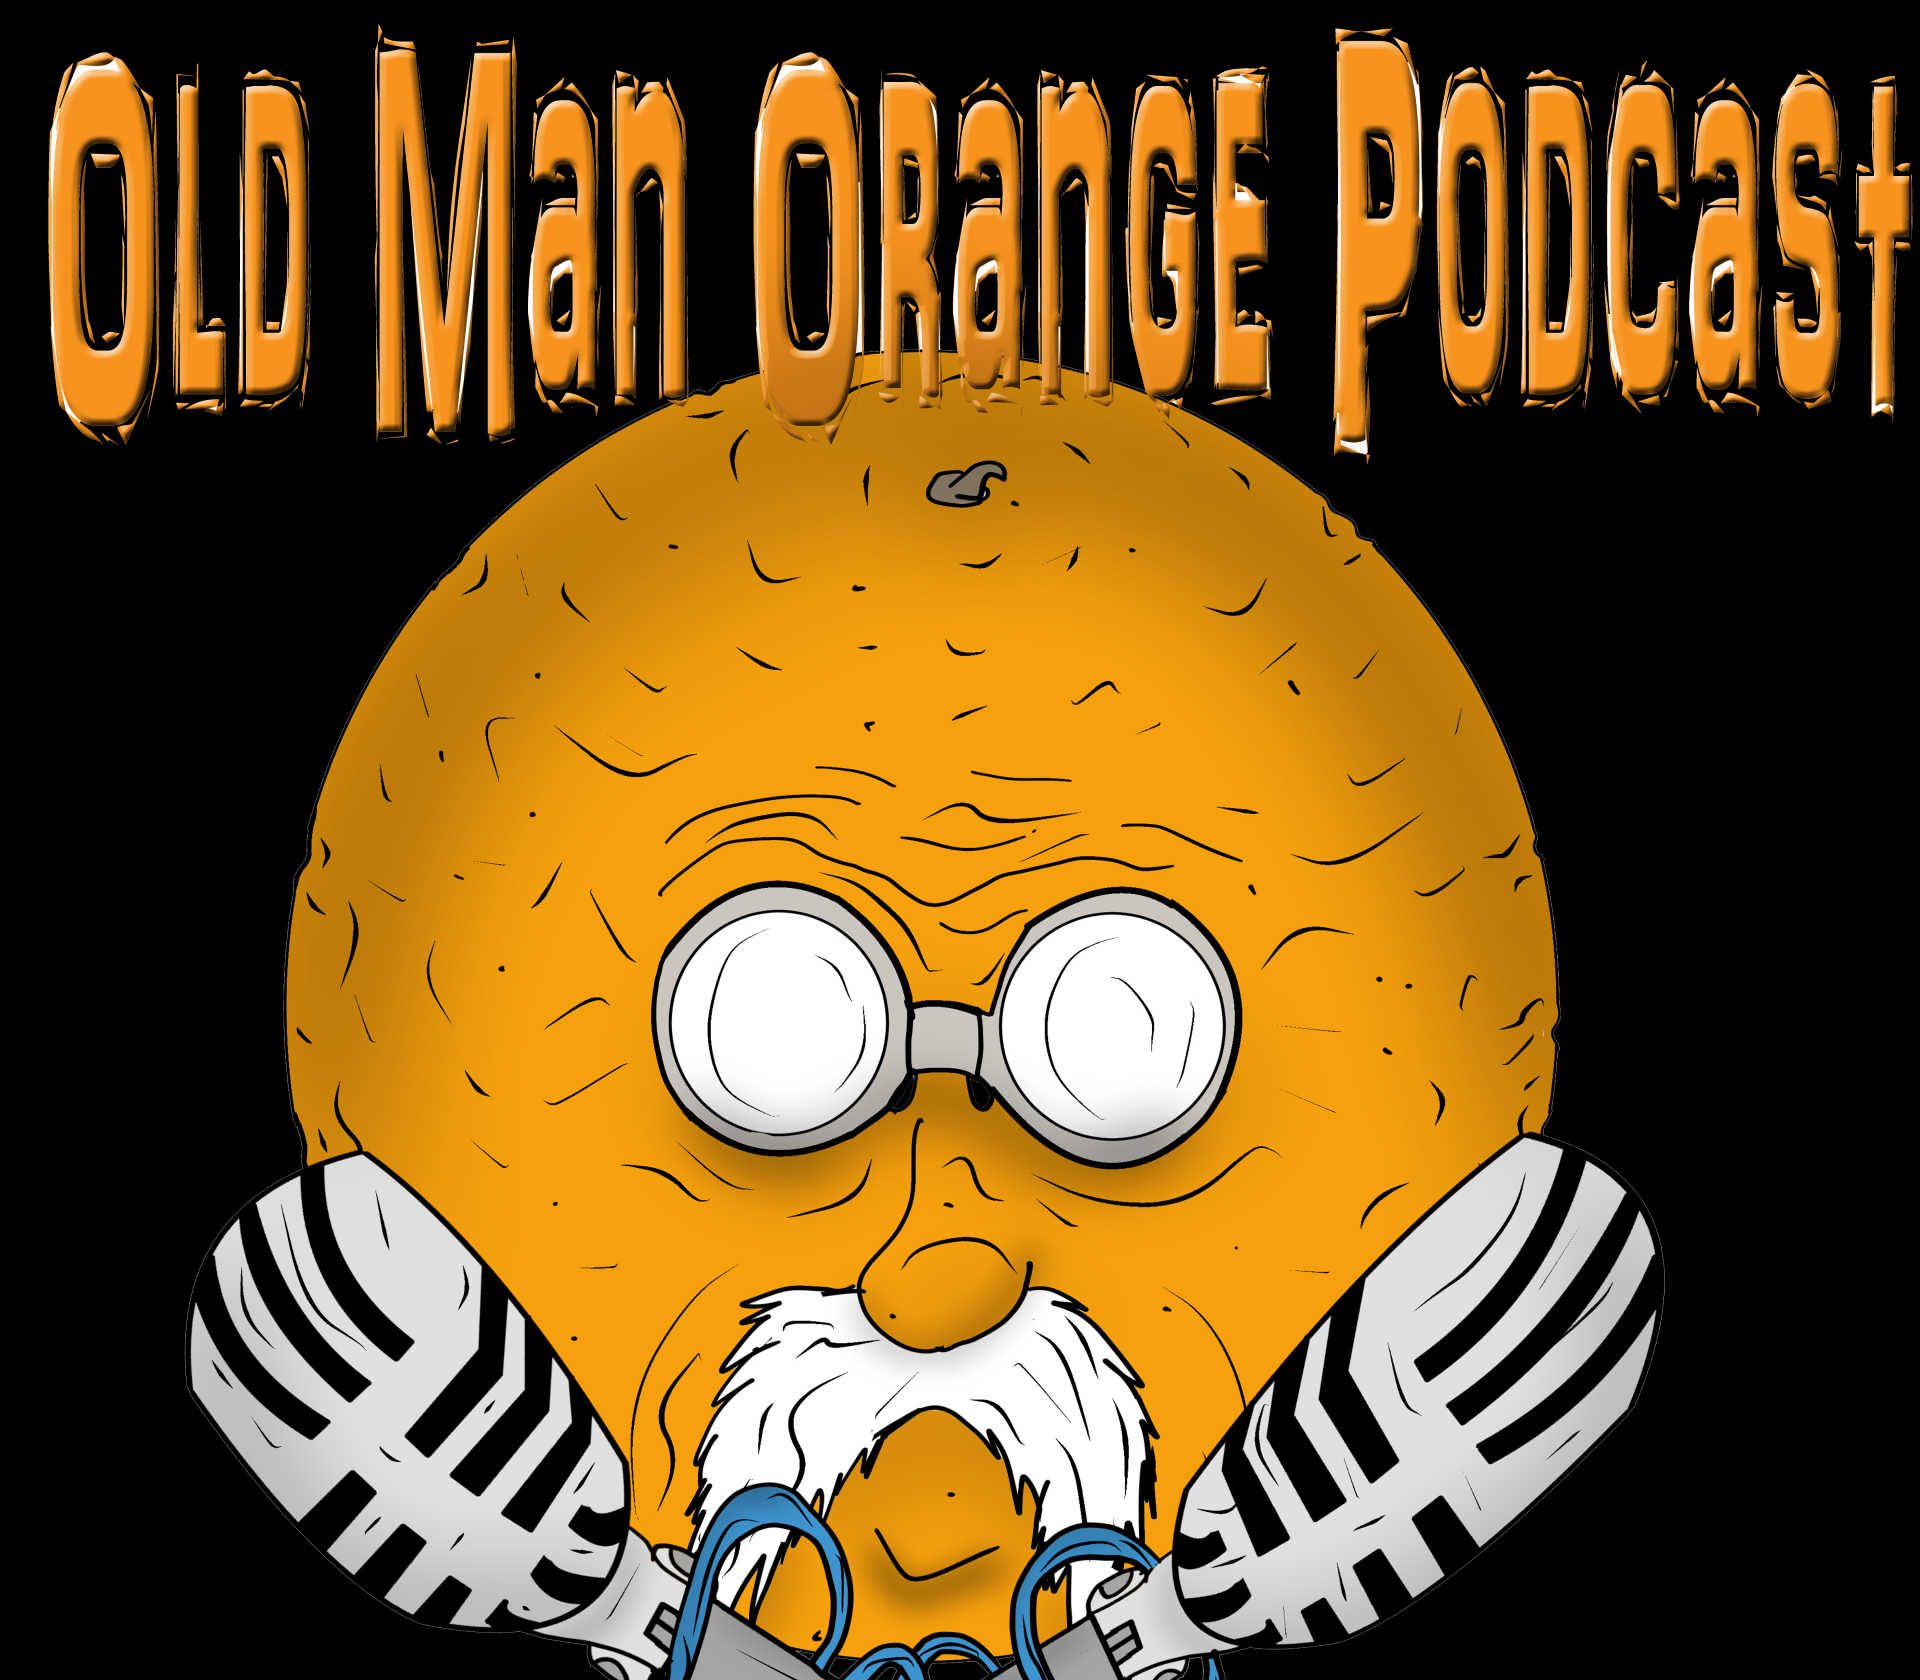 Old Man Orange